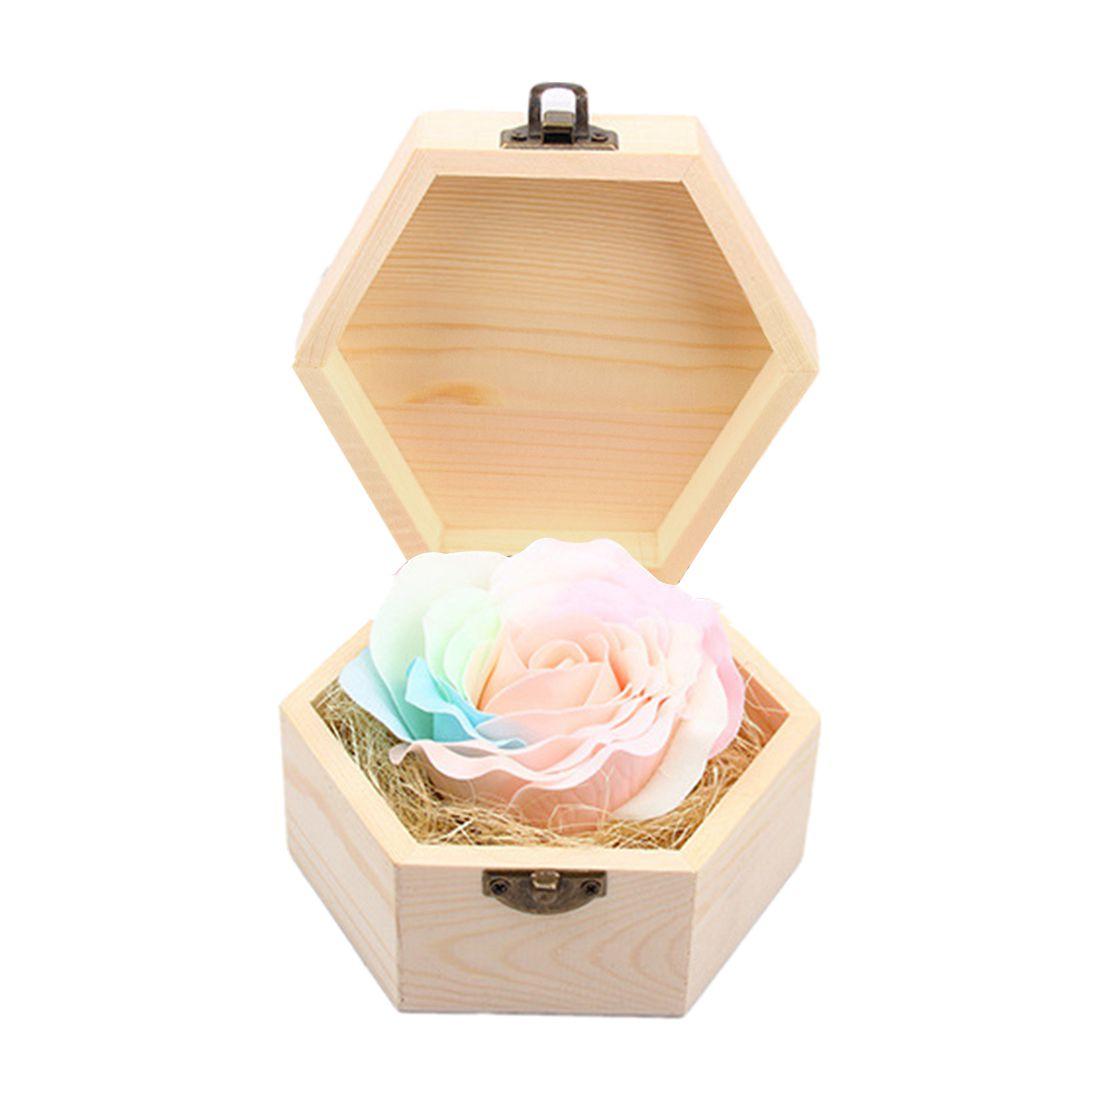 Soap Flowers Gift Box For Birthday Gifts Teacher S Luminous Pink Heart